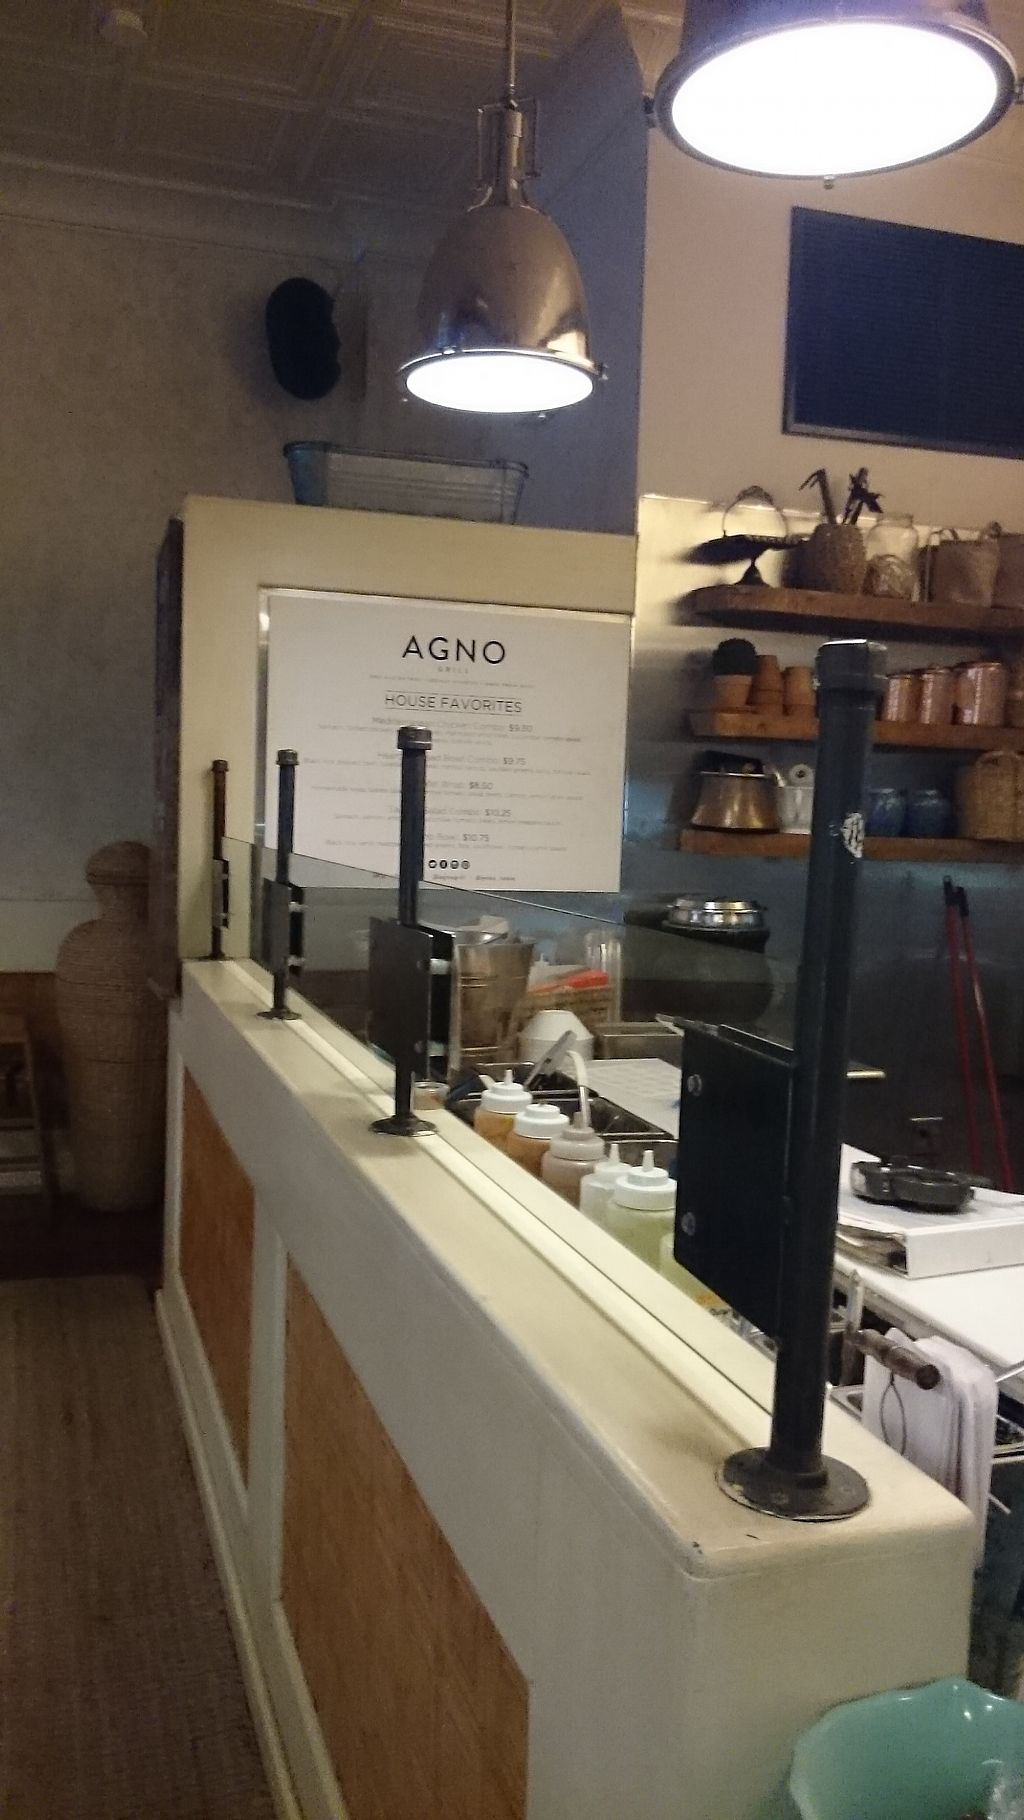 """Photo of Agno Grill  by <a href=""""/members/profile/ZoraySpielvogel"""">ZoraySpielvogel</a> <br/>Inside.  <br/> July 10, 2017  - <a href='/contact/abuse/image/93317/278683'>Report</a>"""